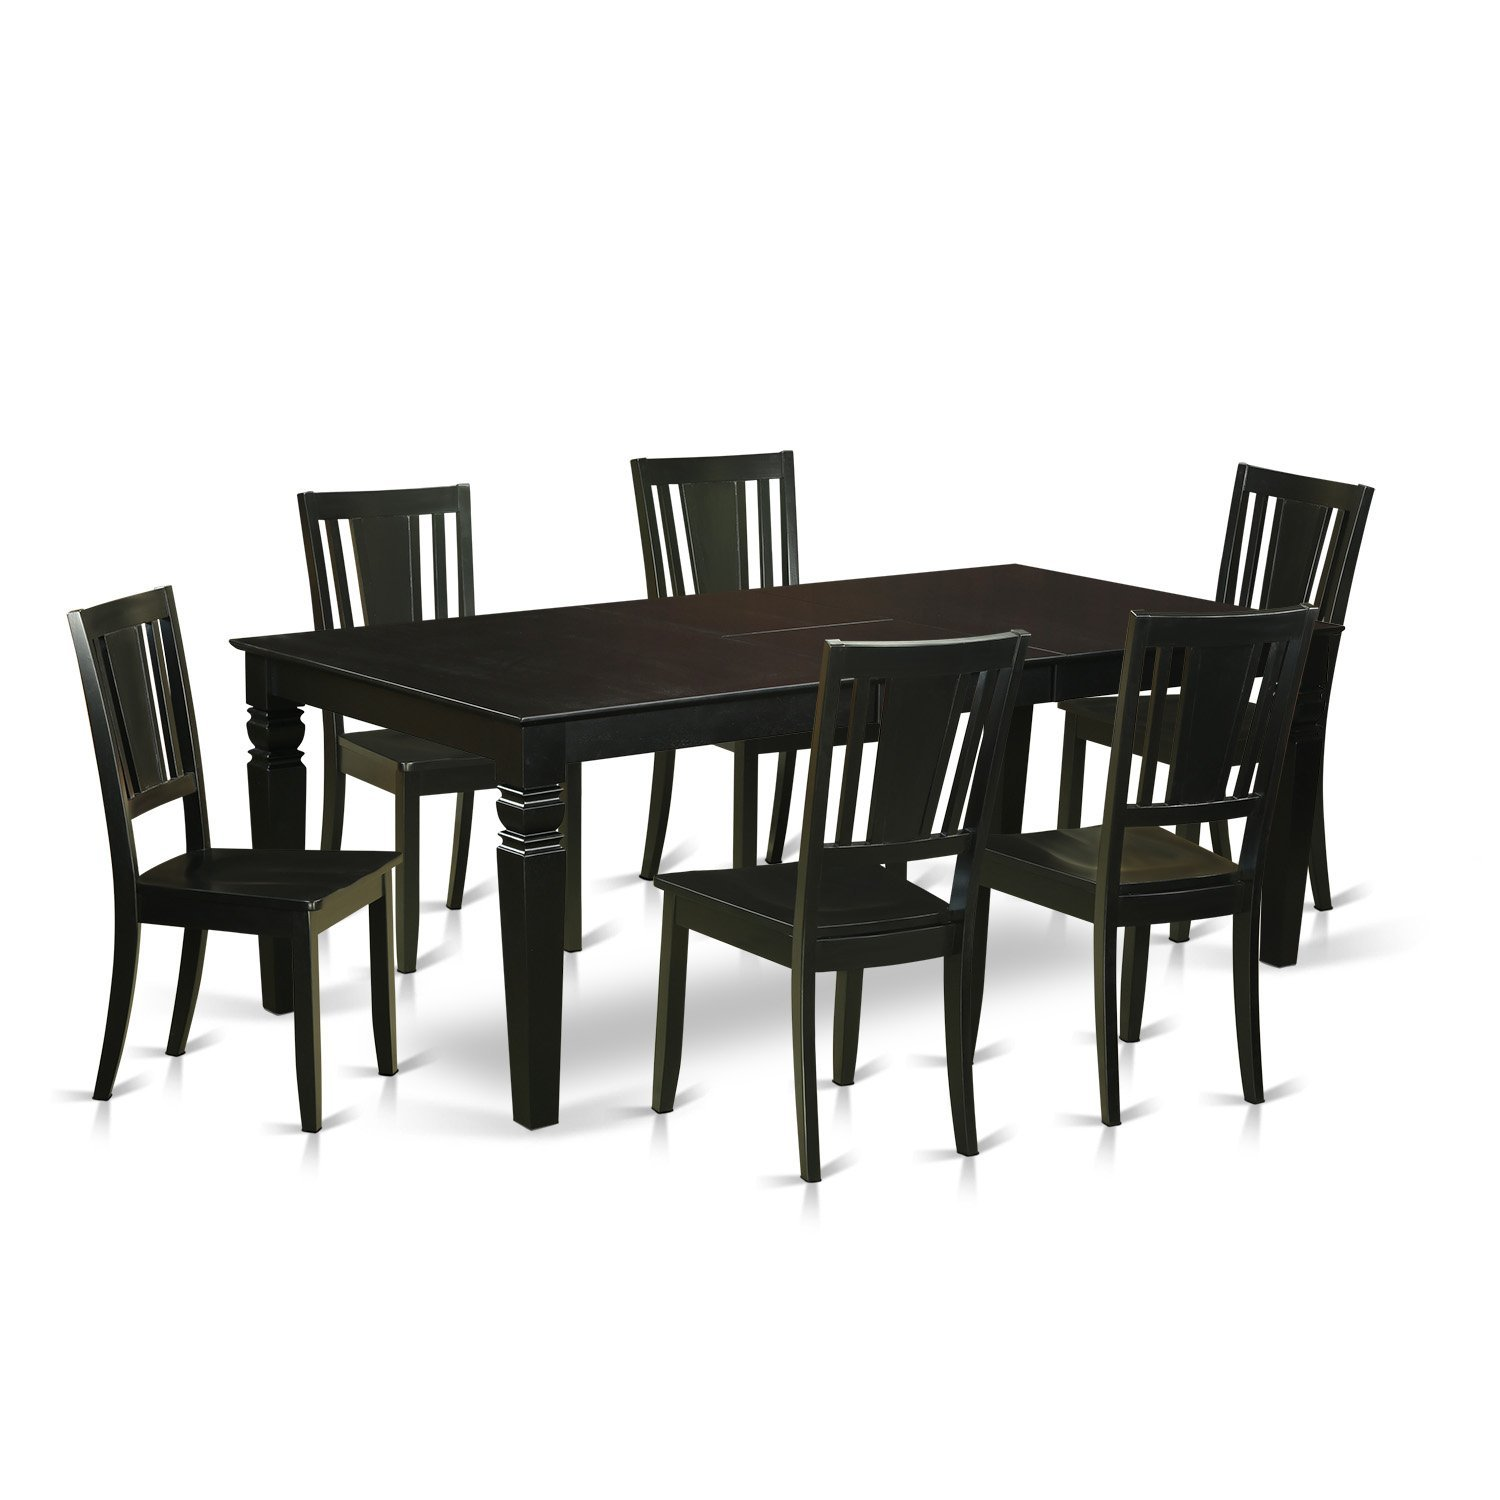 East West Furniture LGDU7-BLK-W 7 Piece Dining Table and 6 Wood Kitchen Chairs, Black